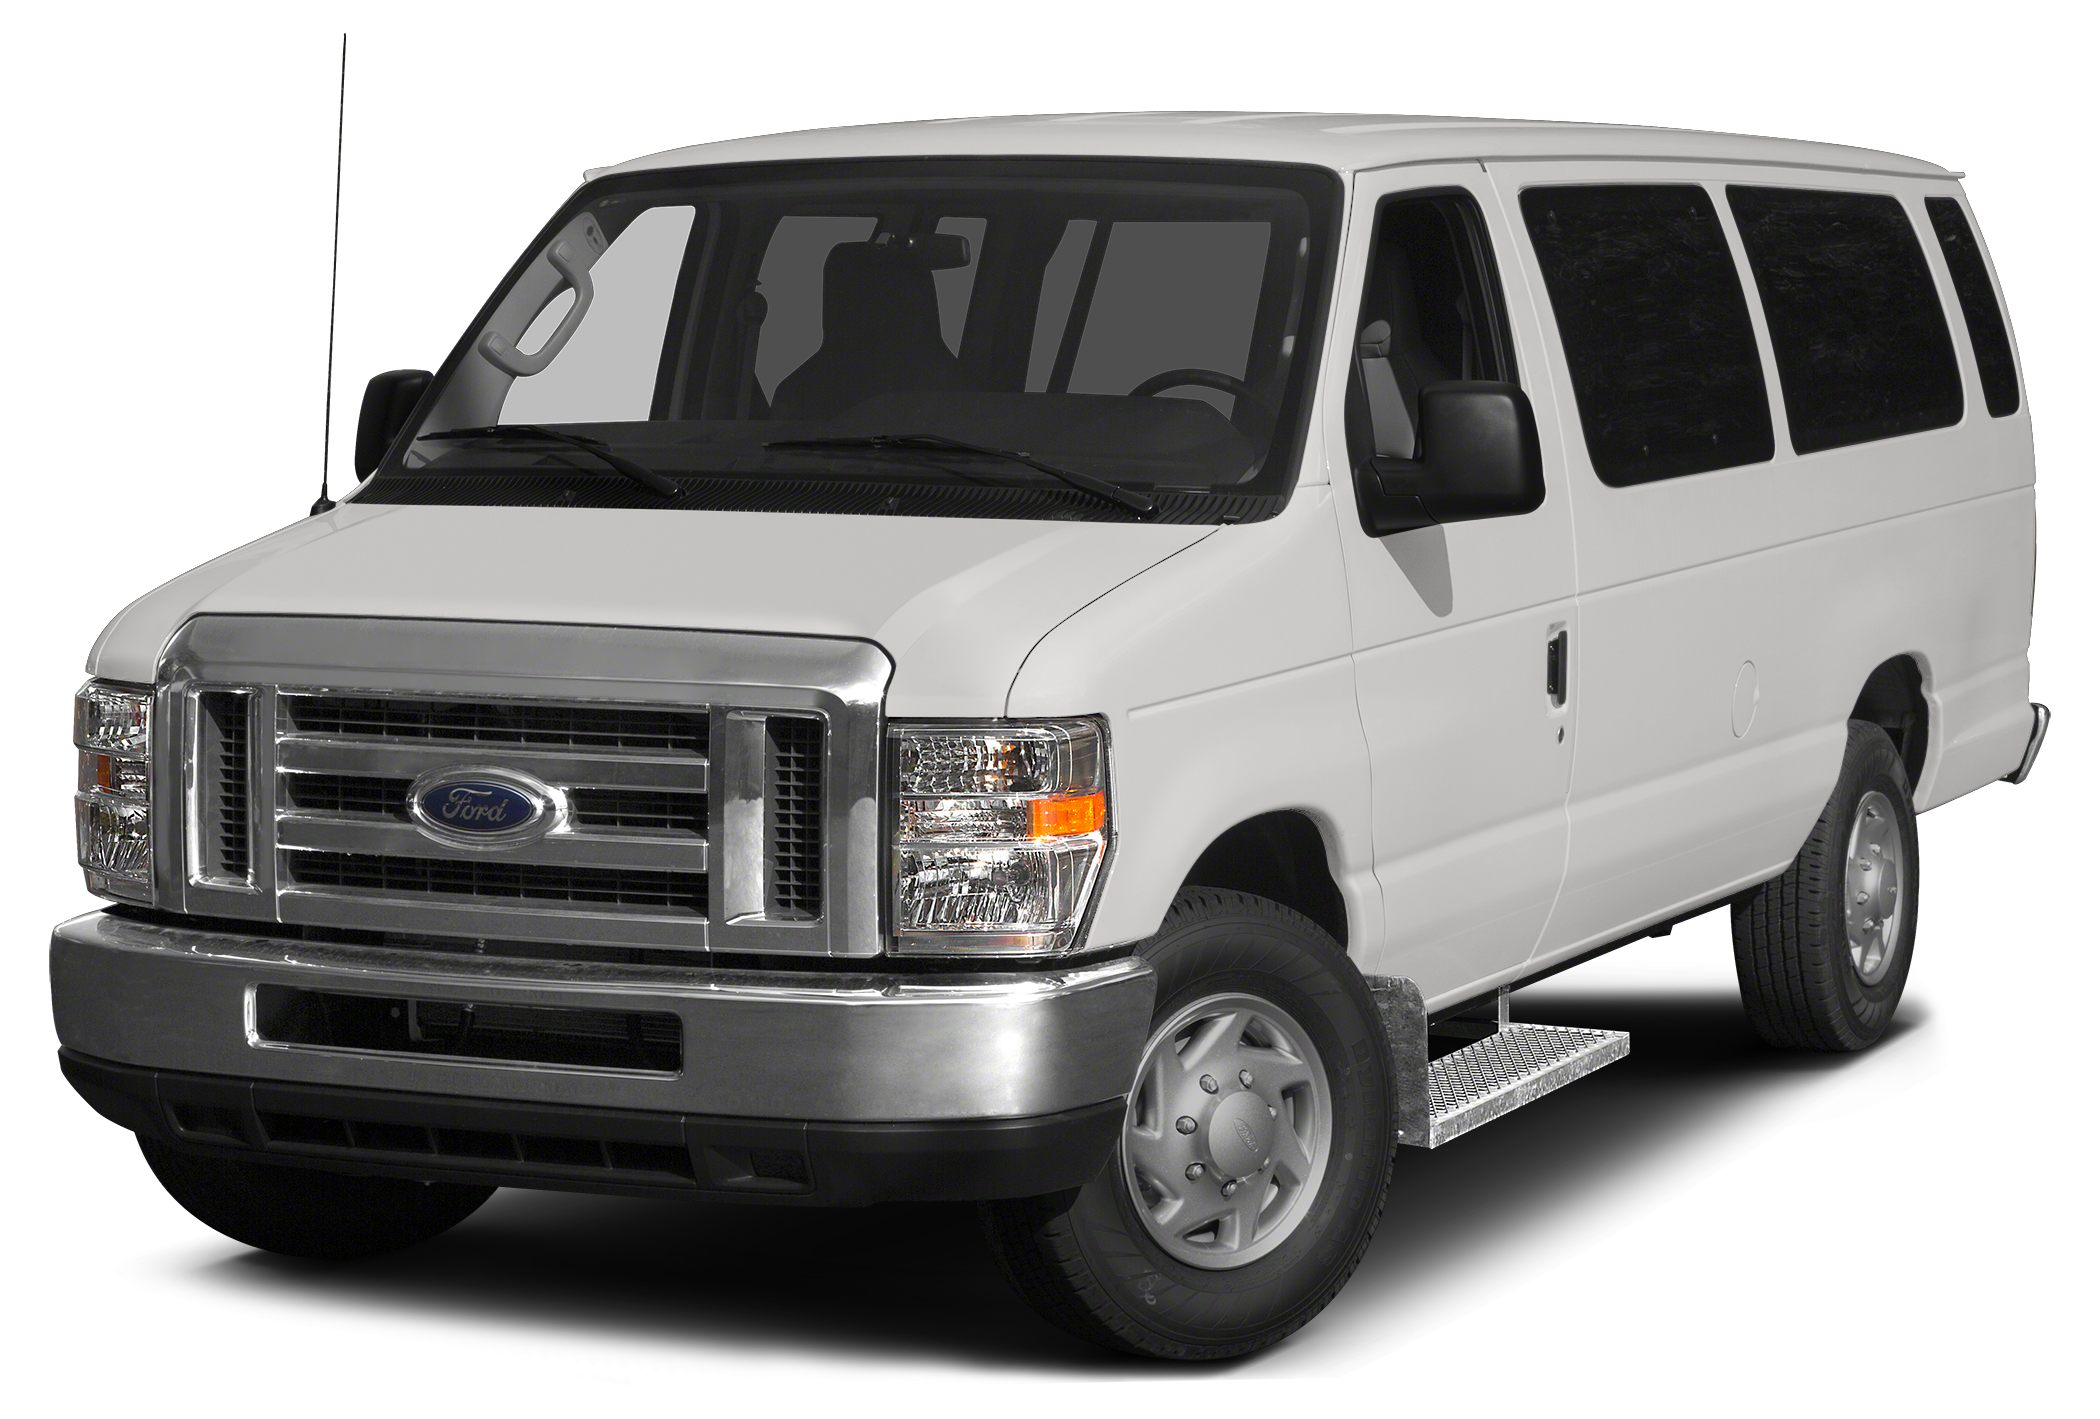 2013 Ford Econoline 350 Super Duty  Whether you need this van as a work vehicle or to haul around